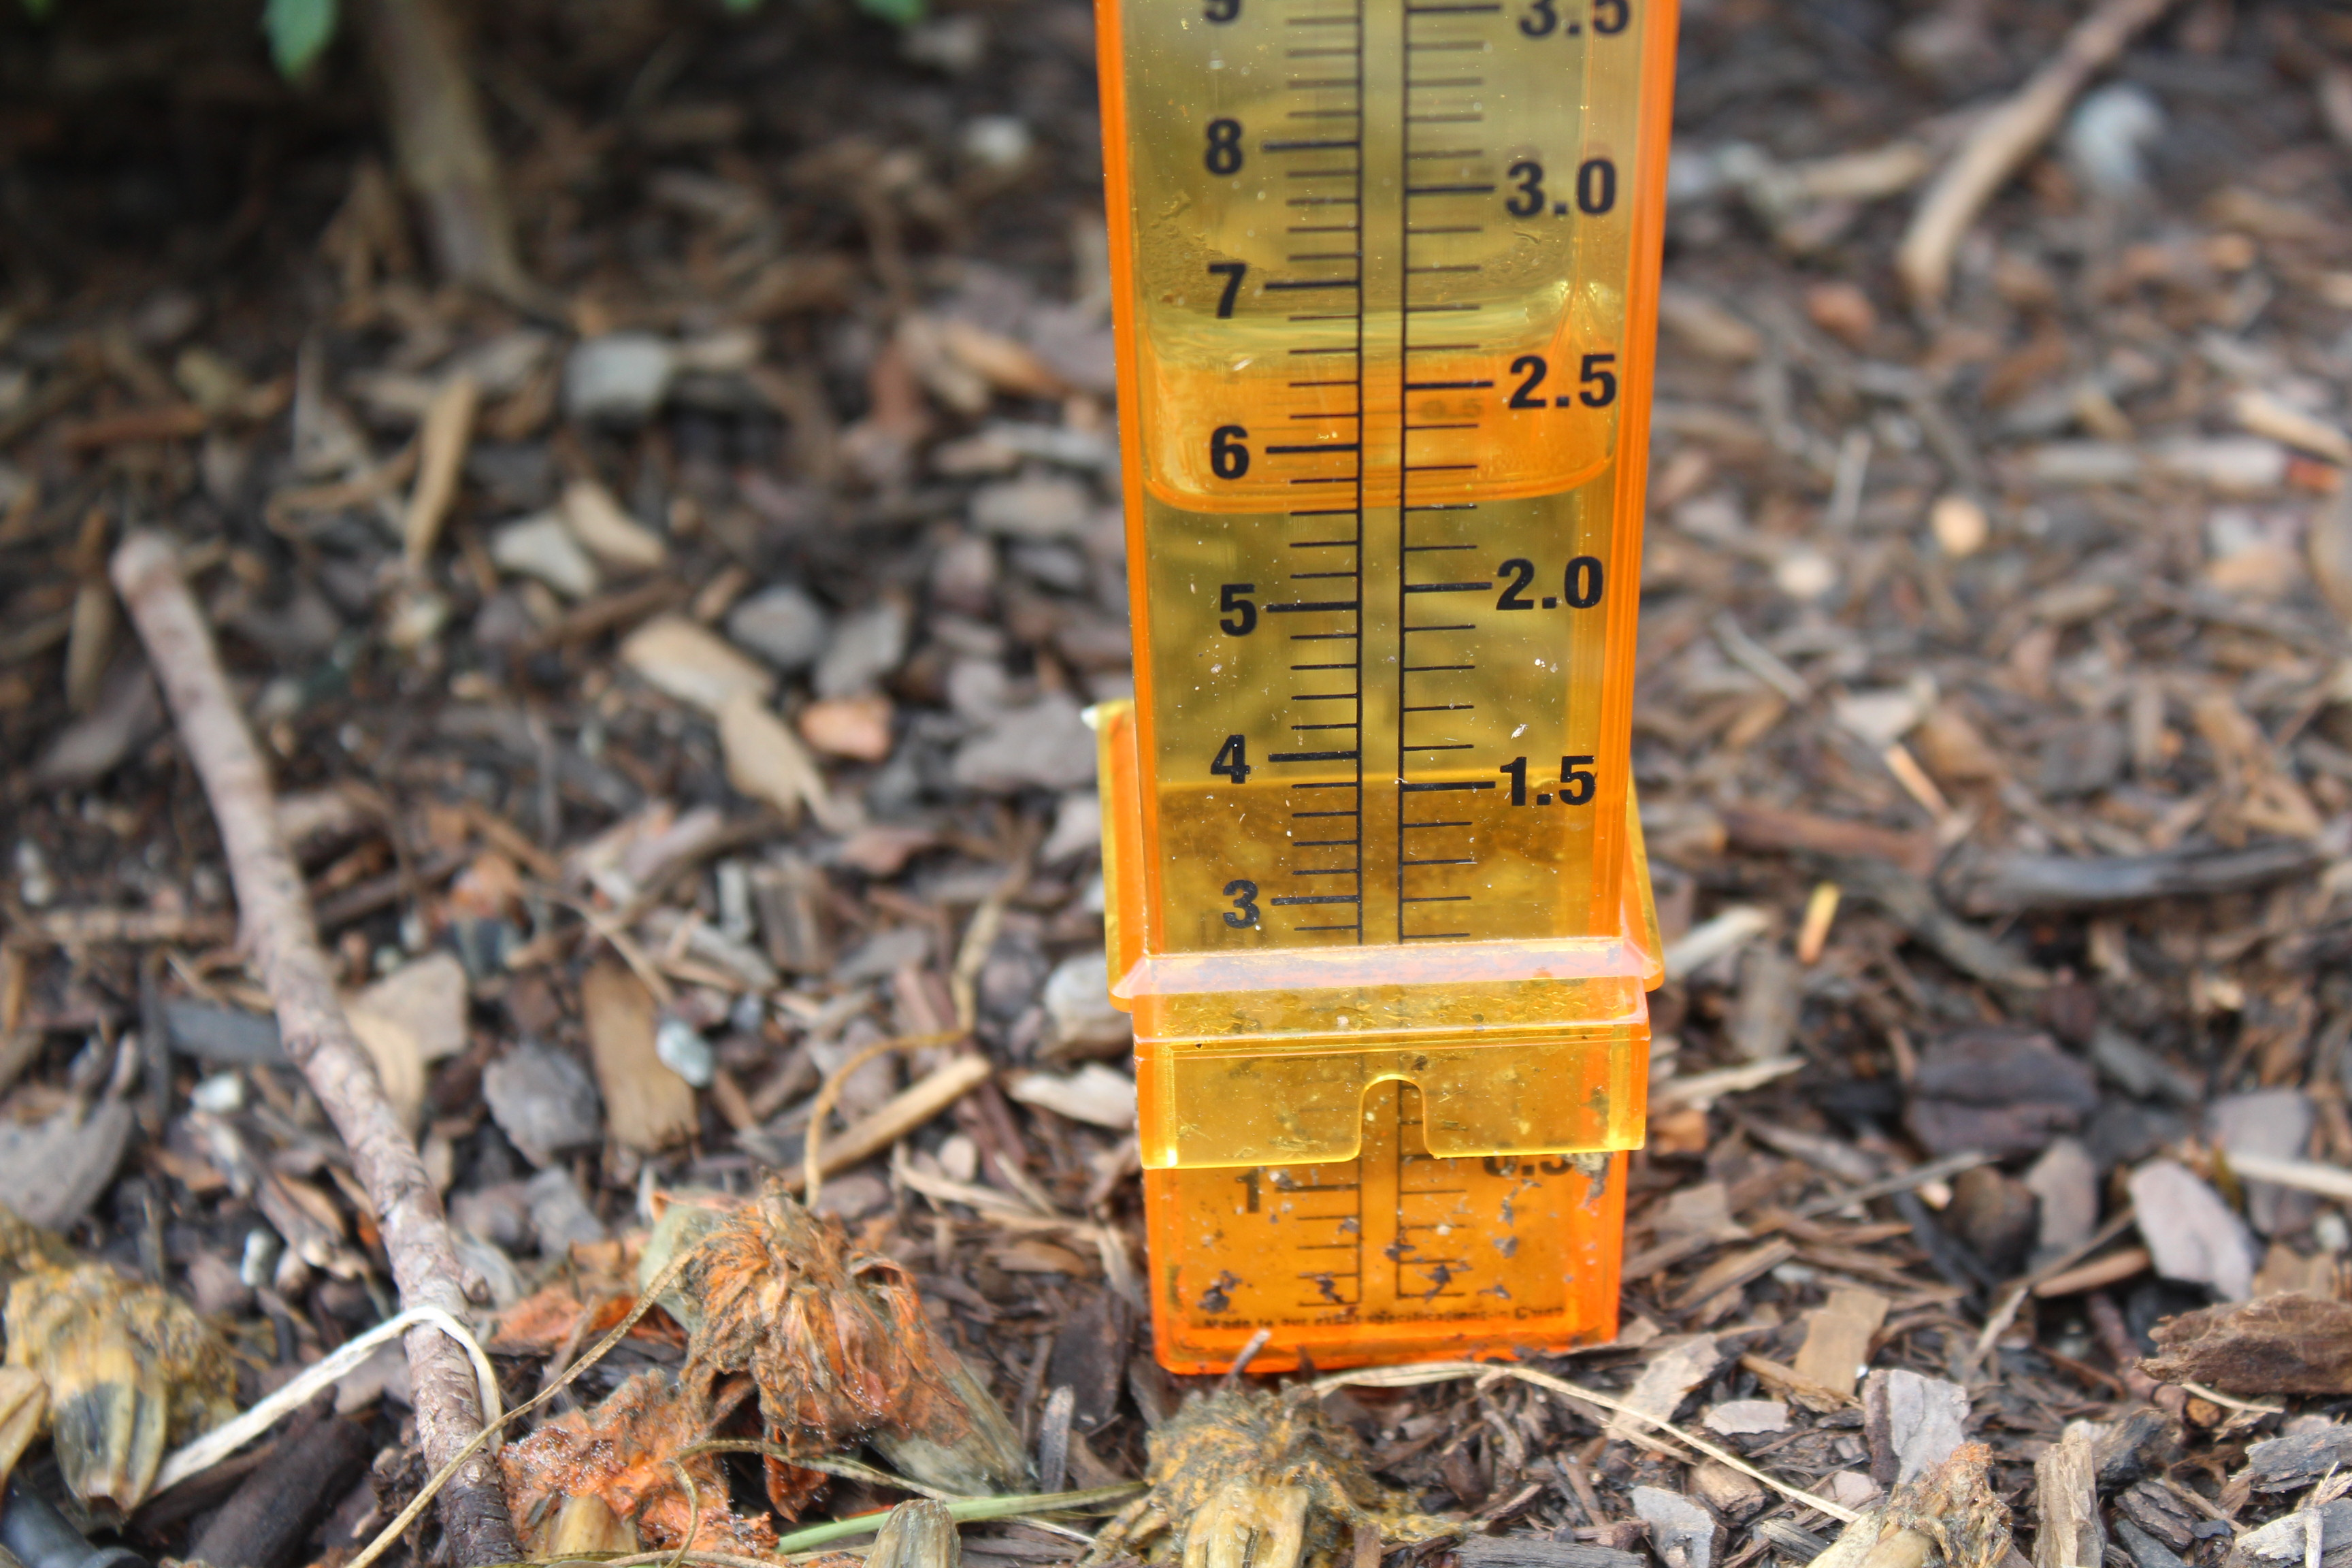 We had this much rain in two day time period.